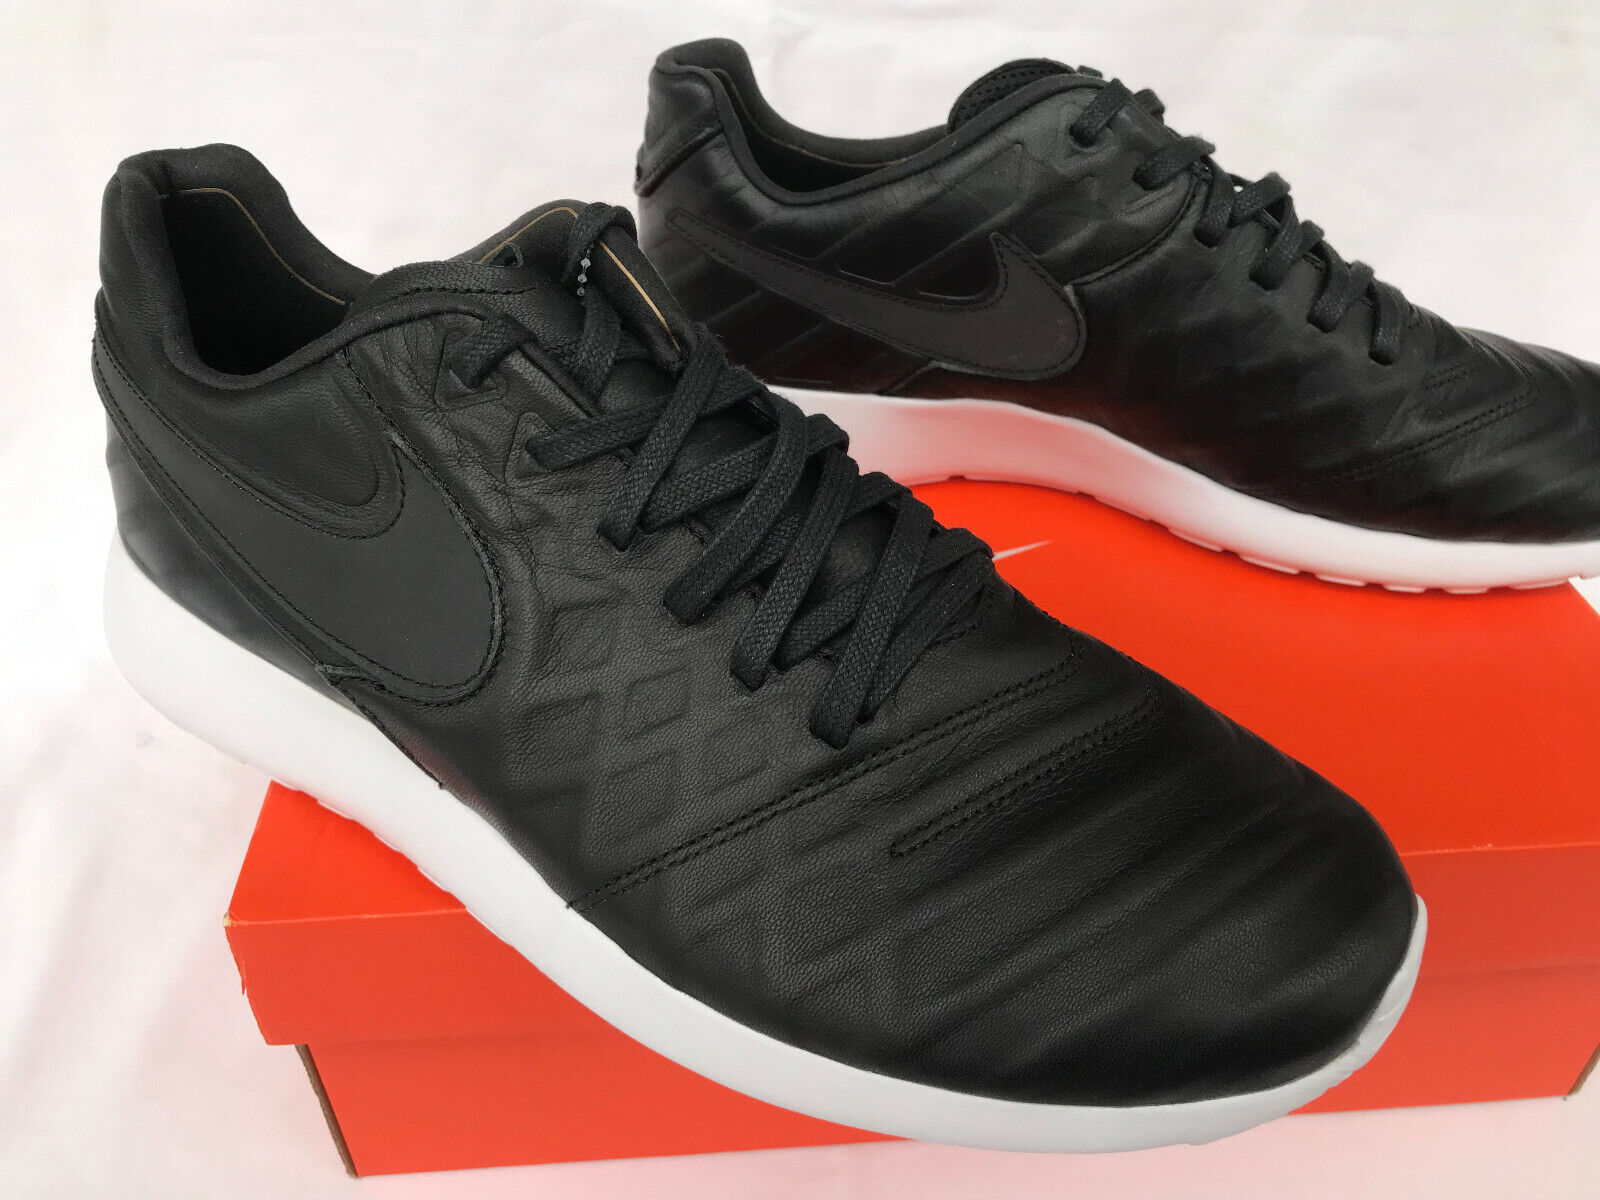 530c982105d3 ... Nike Roshe Tiempo VI VI VI QS 853535-007 Black Leather Futbol Soccer shoes  Men s ...